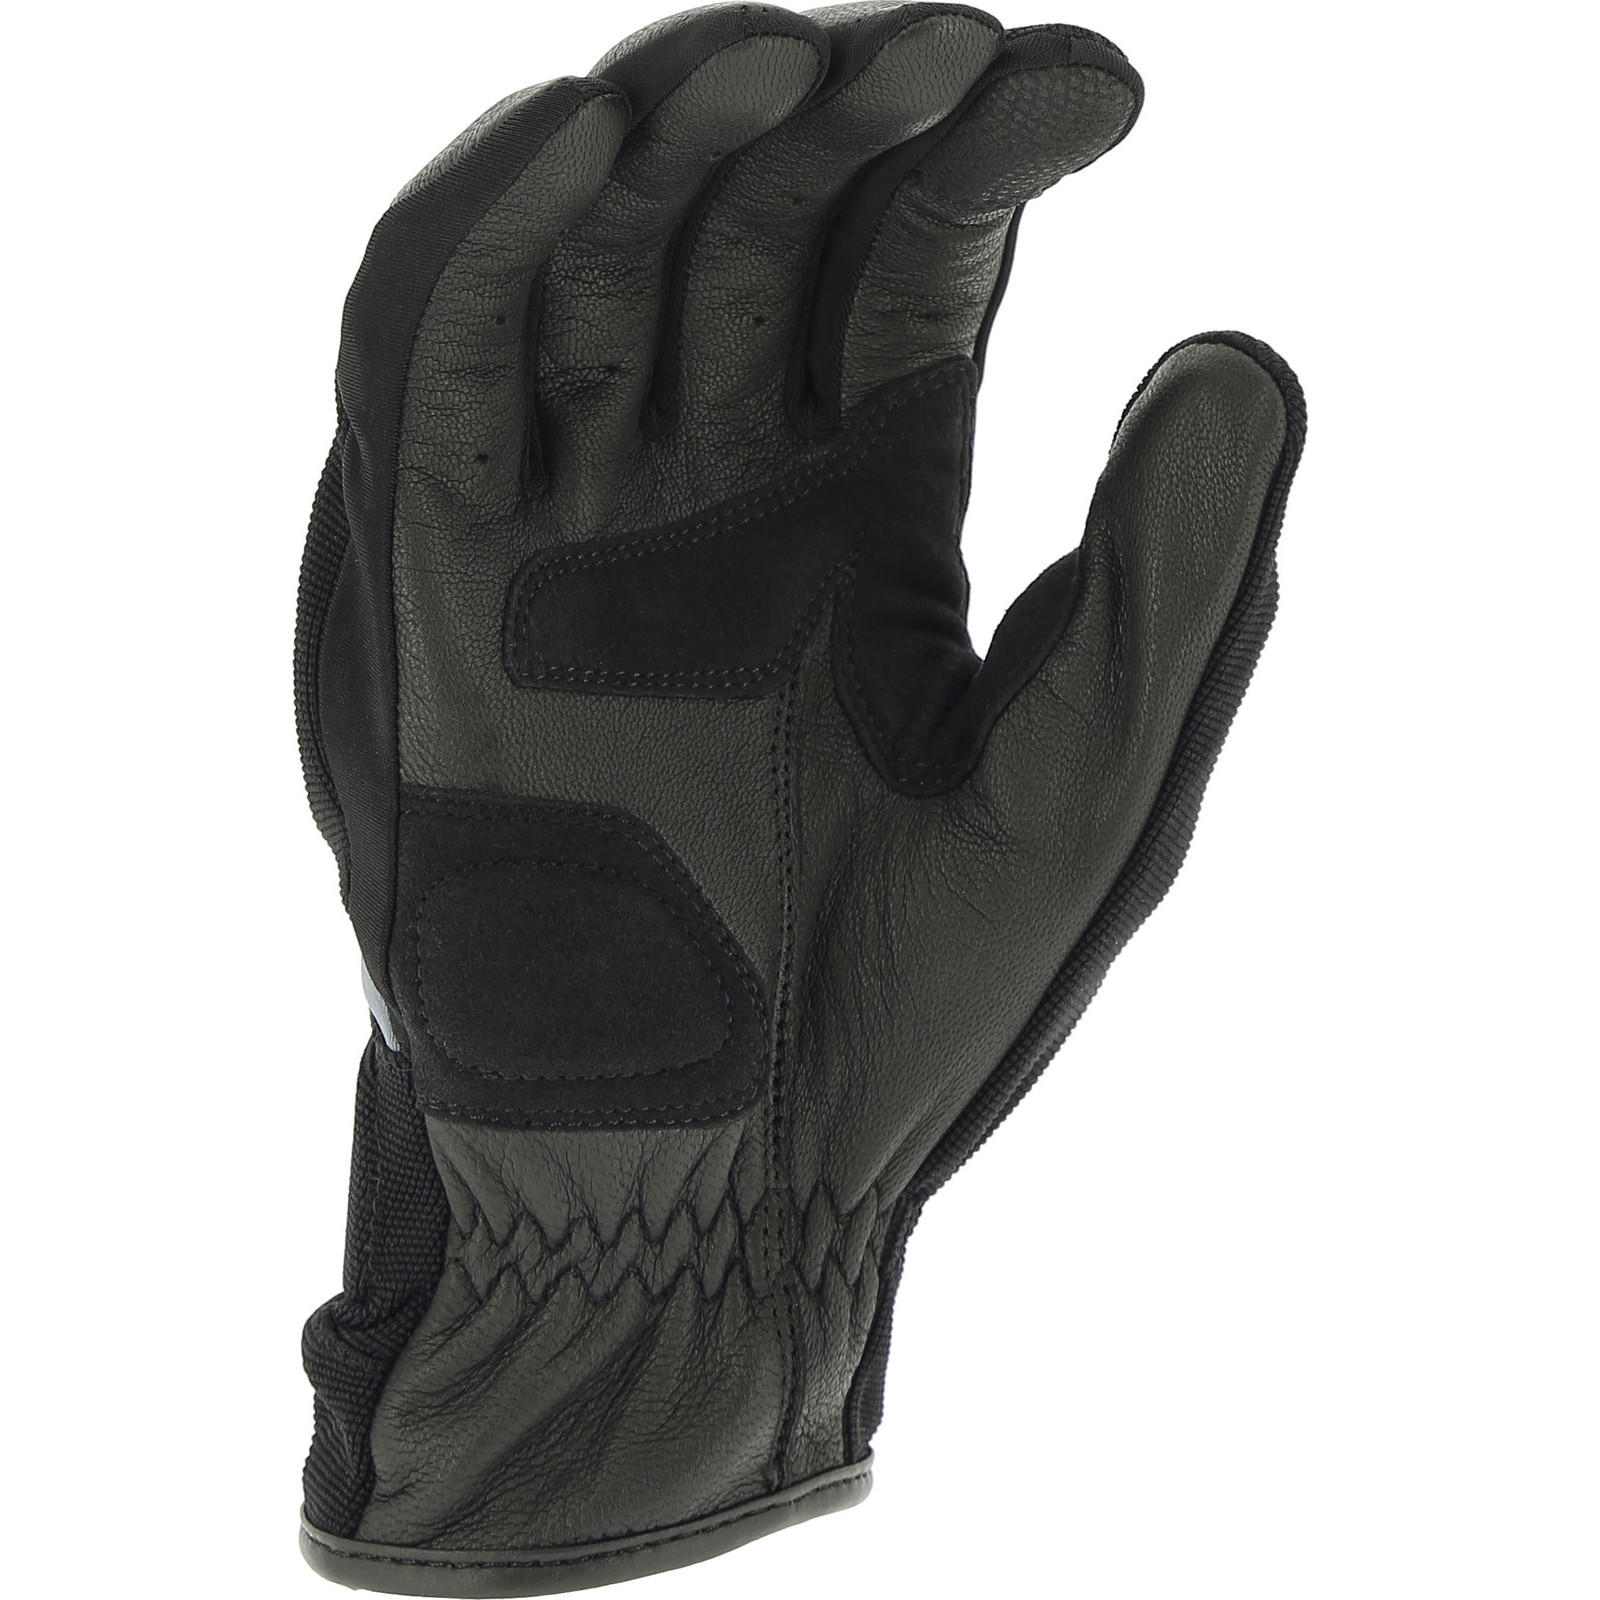 Motorcycle gloves richa - Richa Spyder Motorcycle Gloves Textile Motorbike Vented Touch